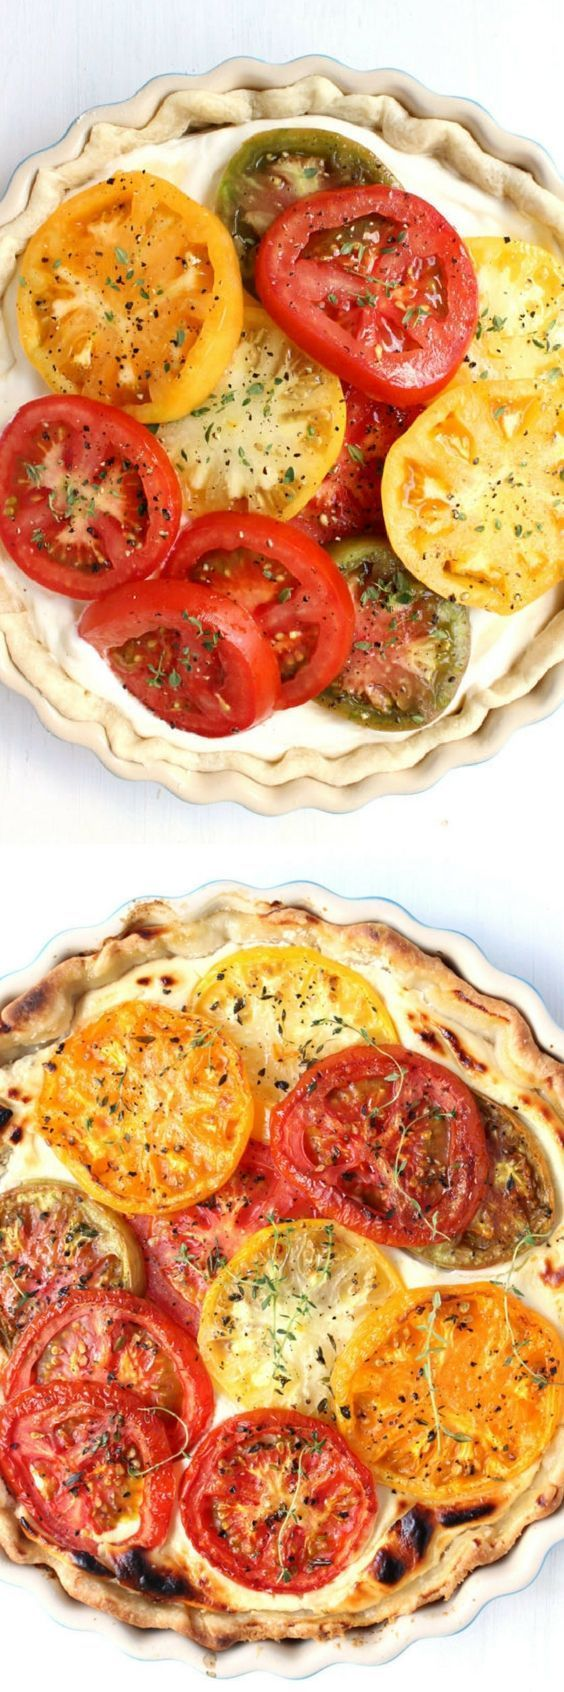 Deliciously creamy & bursting with flavor, this Savory Goat Cheese Tomato Pie is an elegantly rustic treat that's perfect for summer and easy to bake! | easy brunch recipe | light summer dinner | summer entertaining